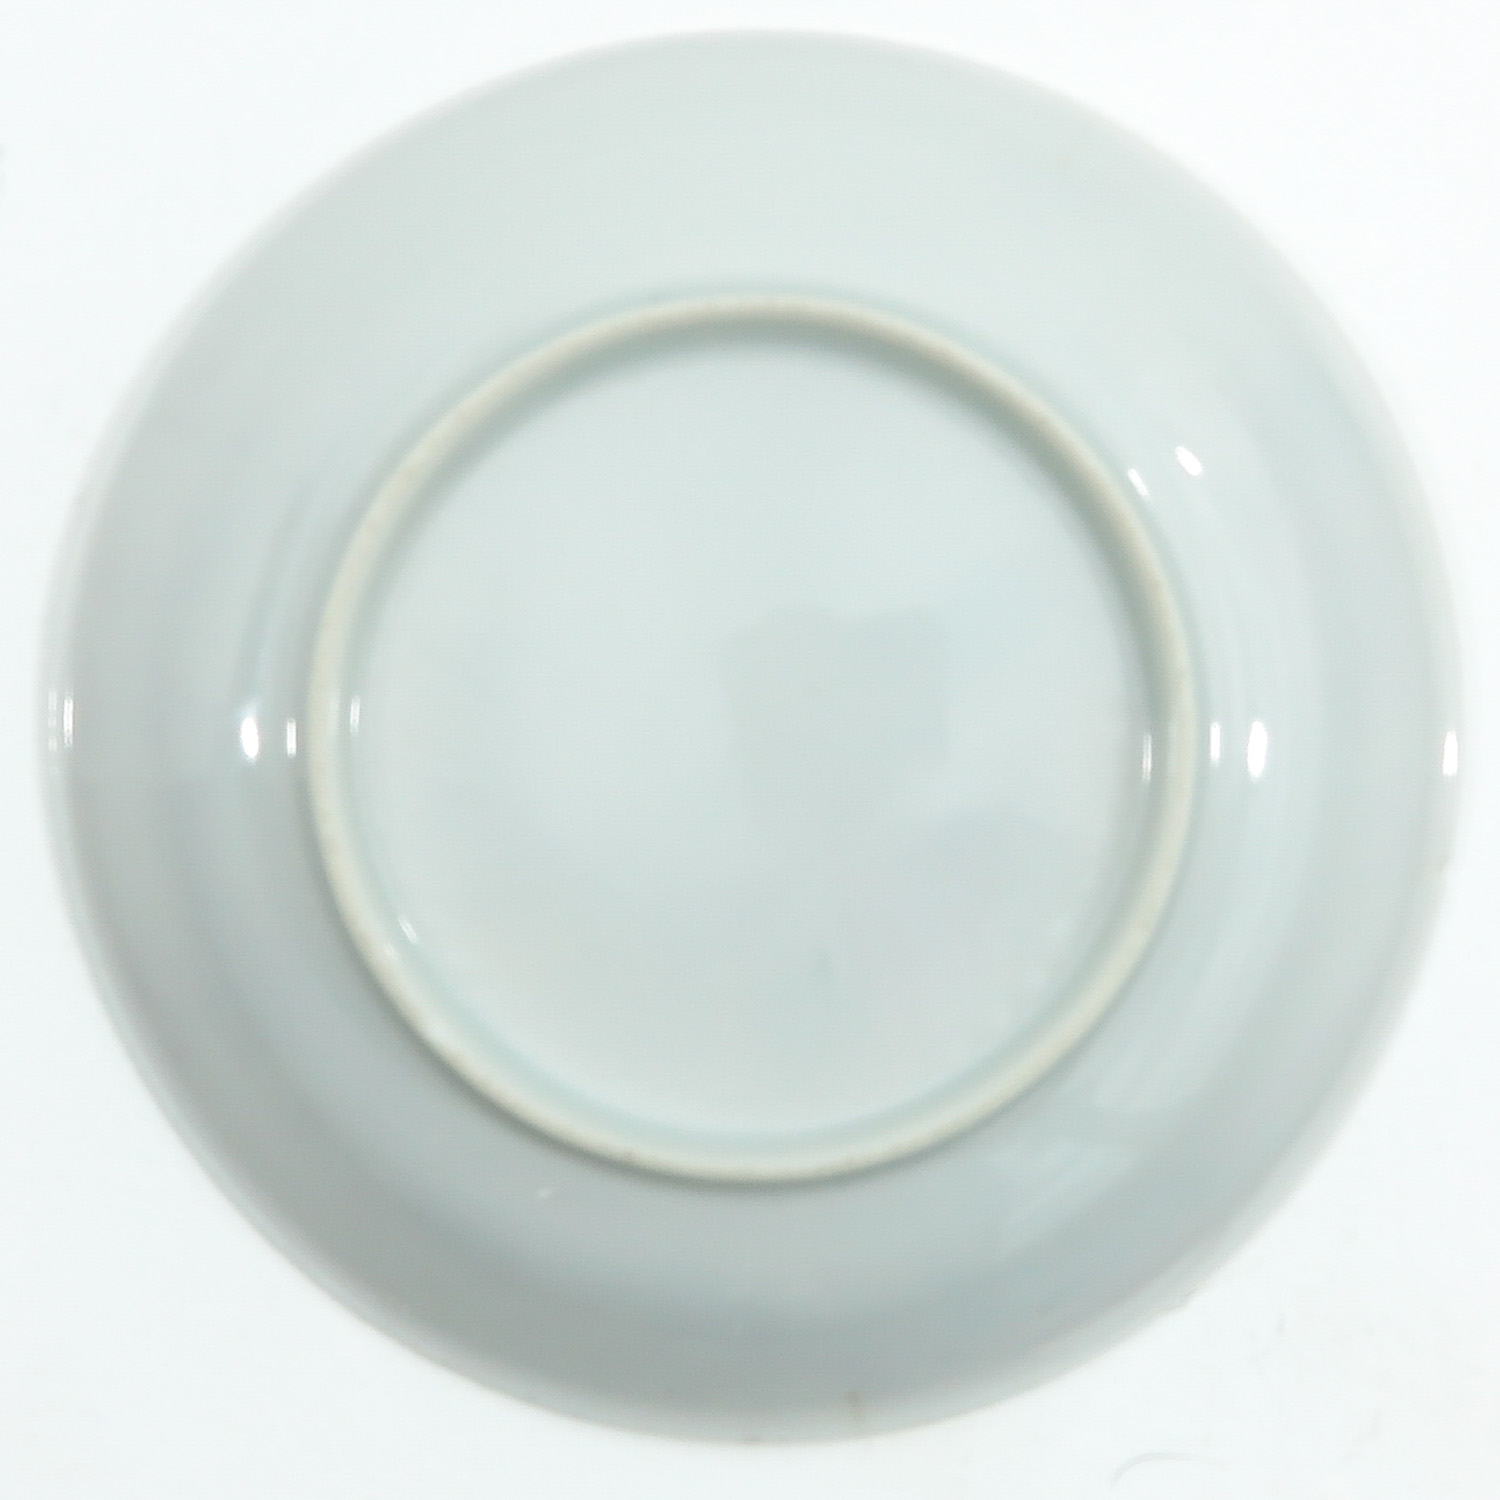 A Pair of Chine de Commande Small Plates - Image 6 of 9